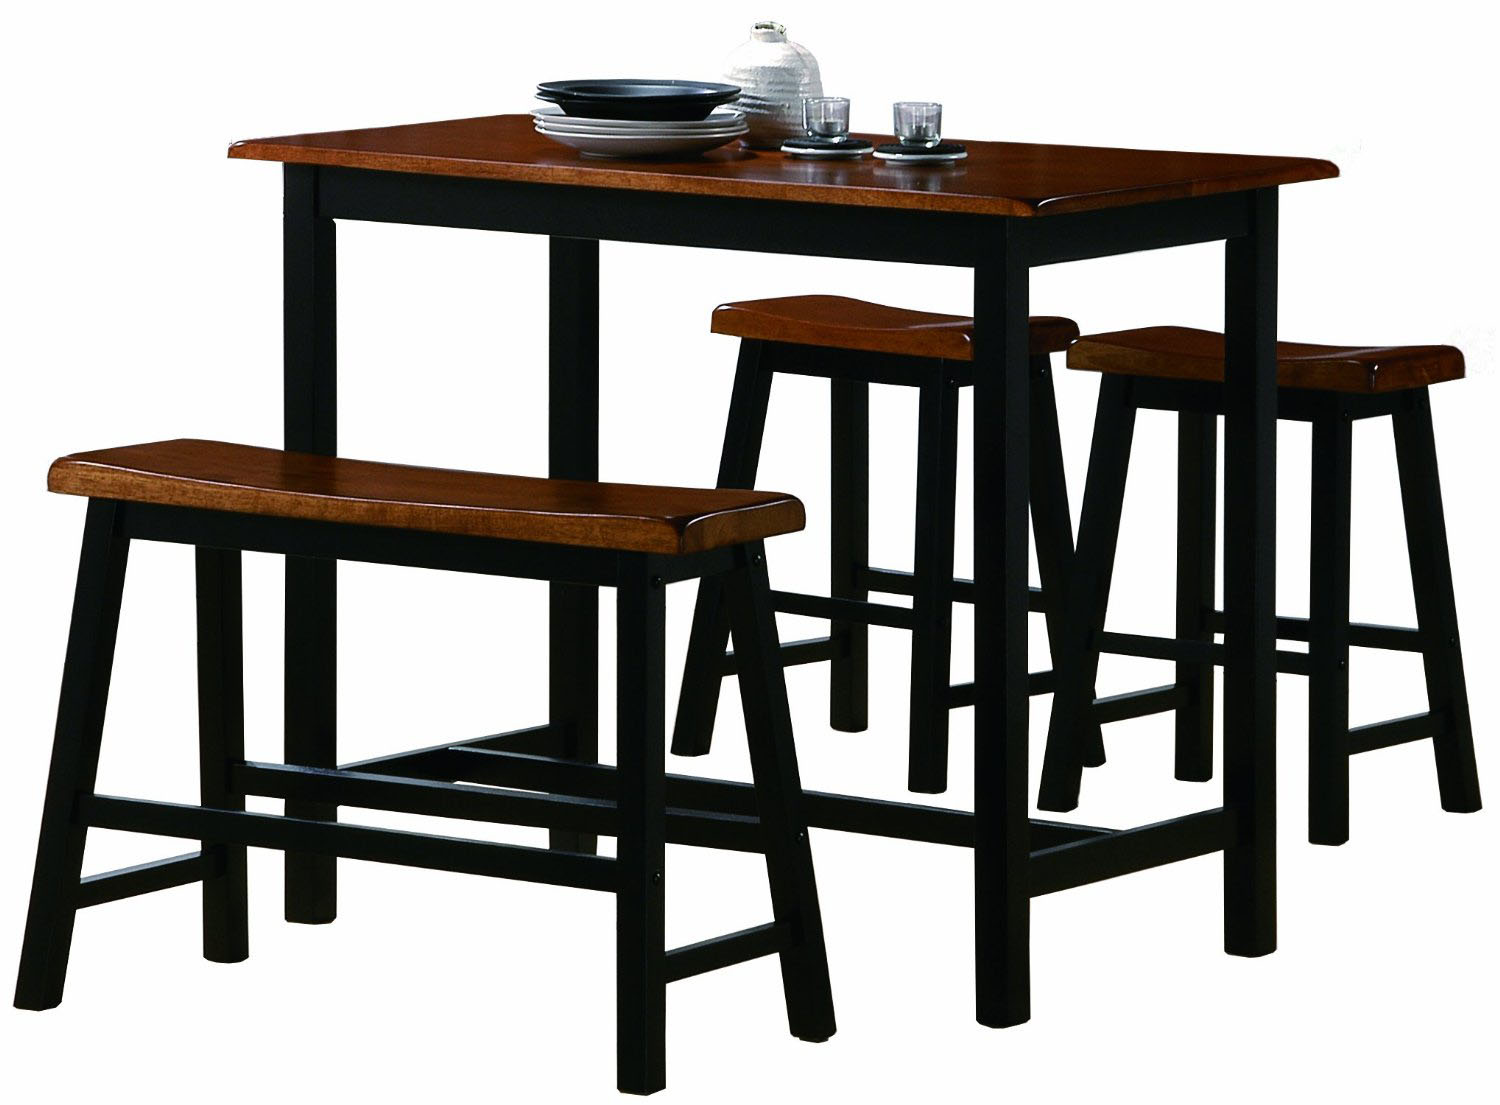 Counter height kitchen tables home decorator shop - High top dining tables for small spaces collection ...